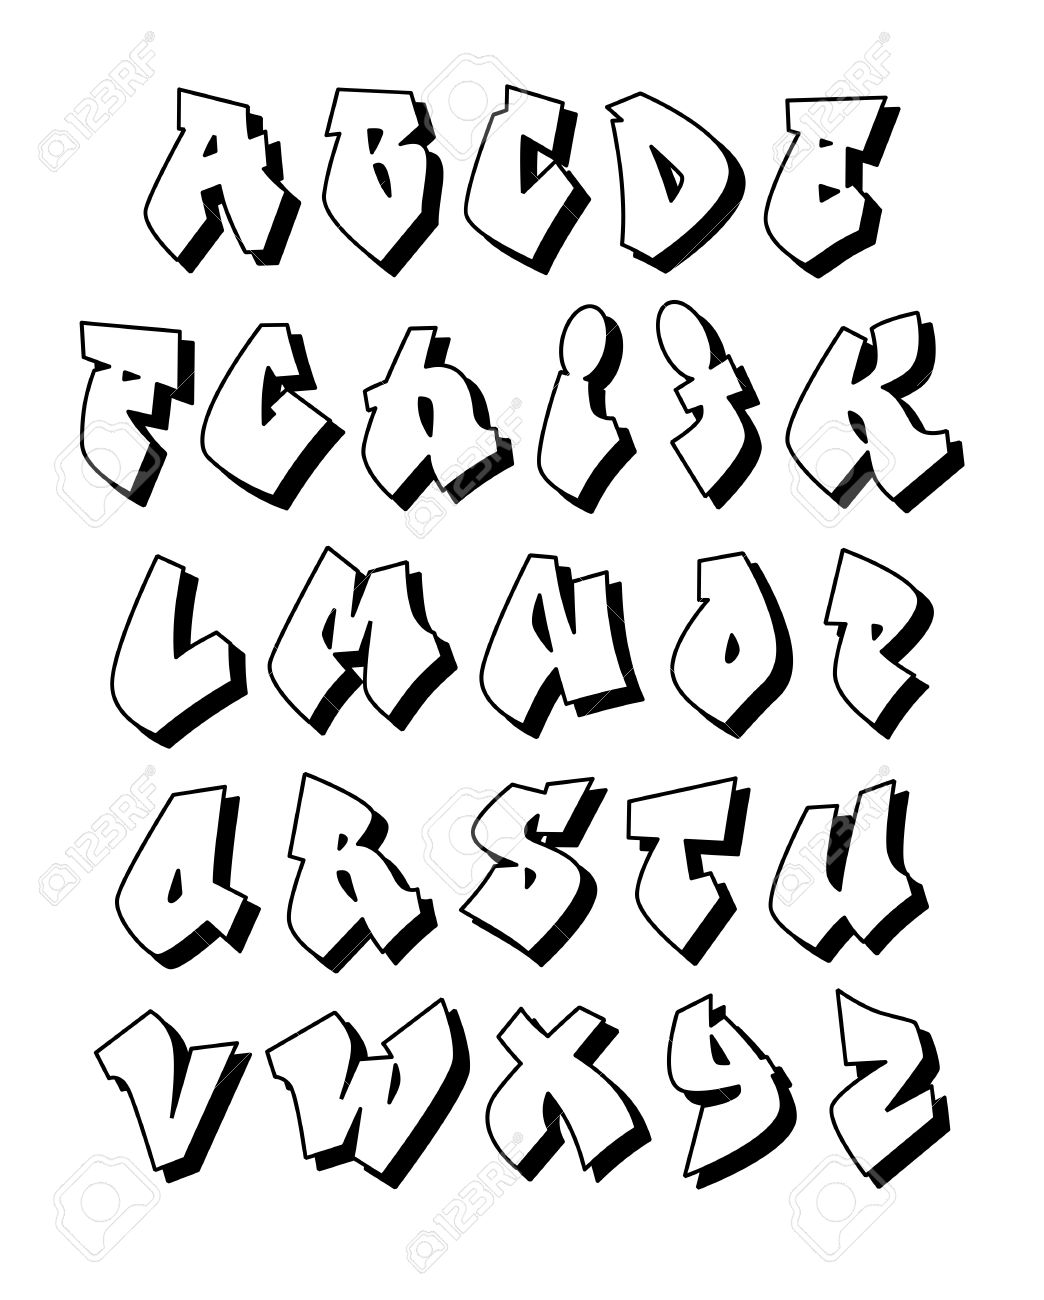 Alfabet Graffiti graffiti alphabet. vector royalty free cliparts, vectors, and stock